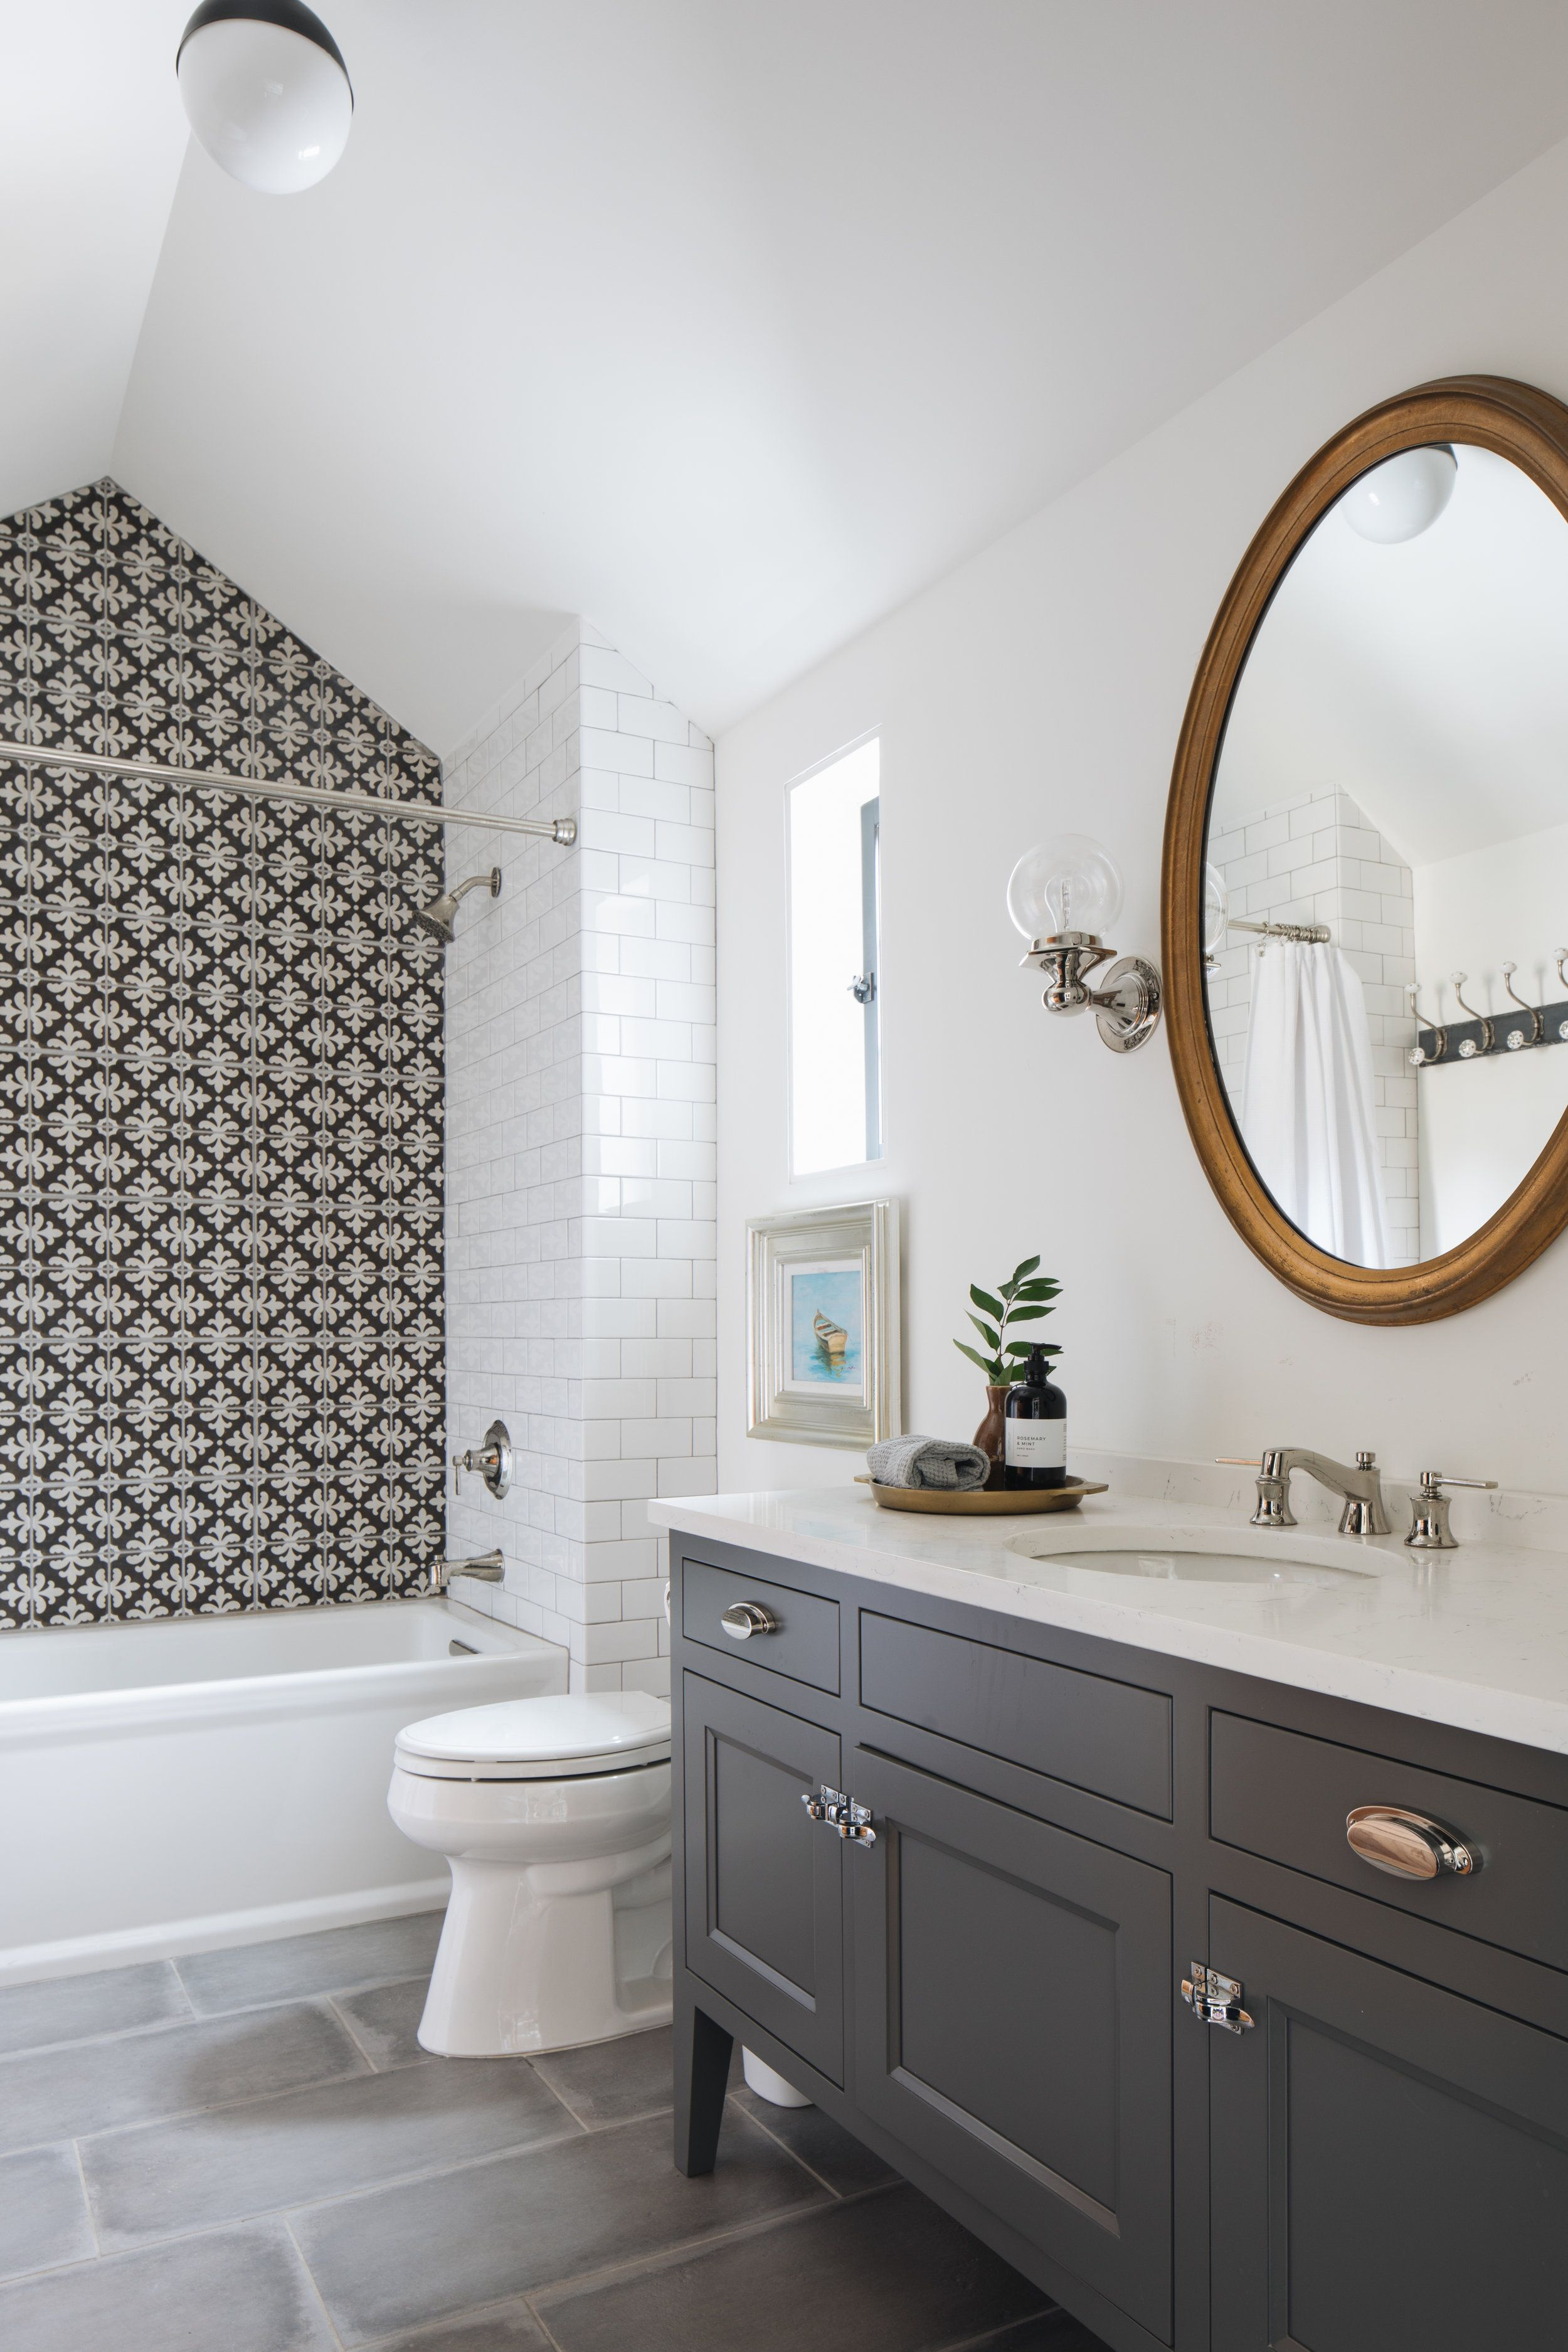 Bathroom With Vaulted Ceiling Feature Tile Sconces Vanity On